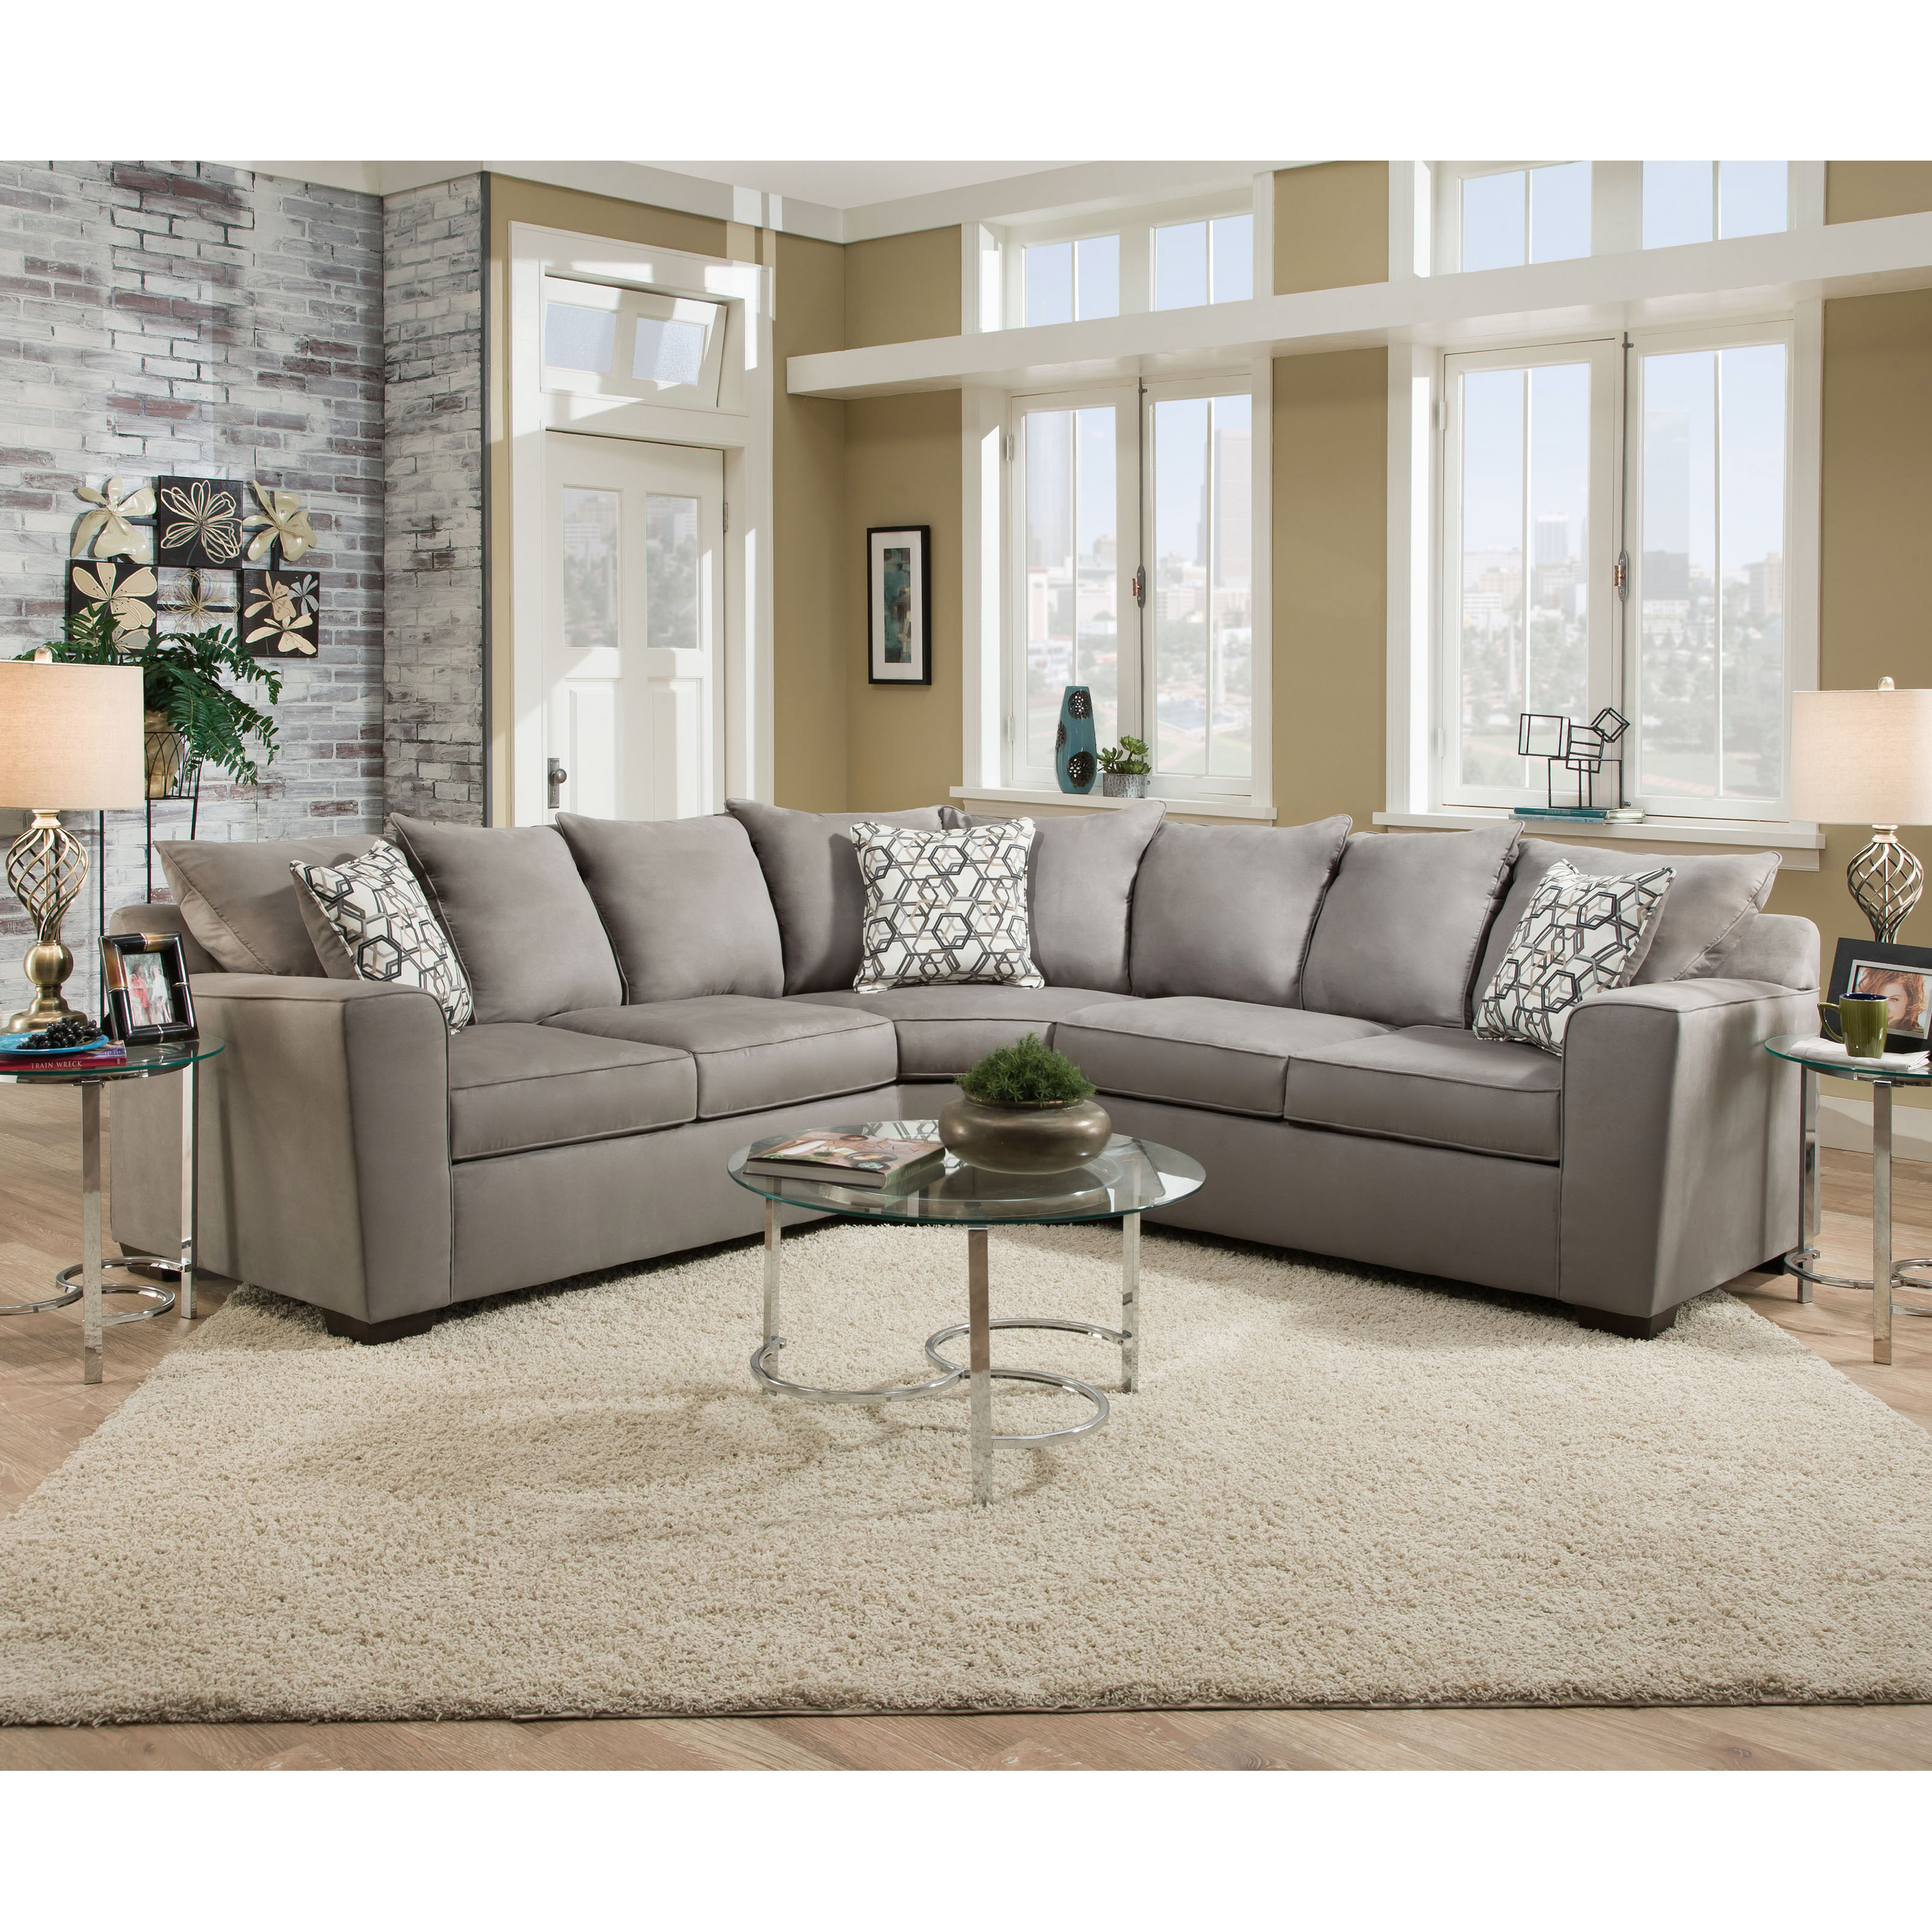 Barkley Fabric Sectional Sandstone